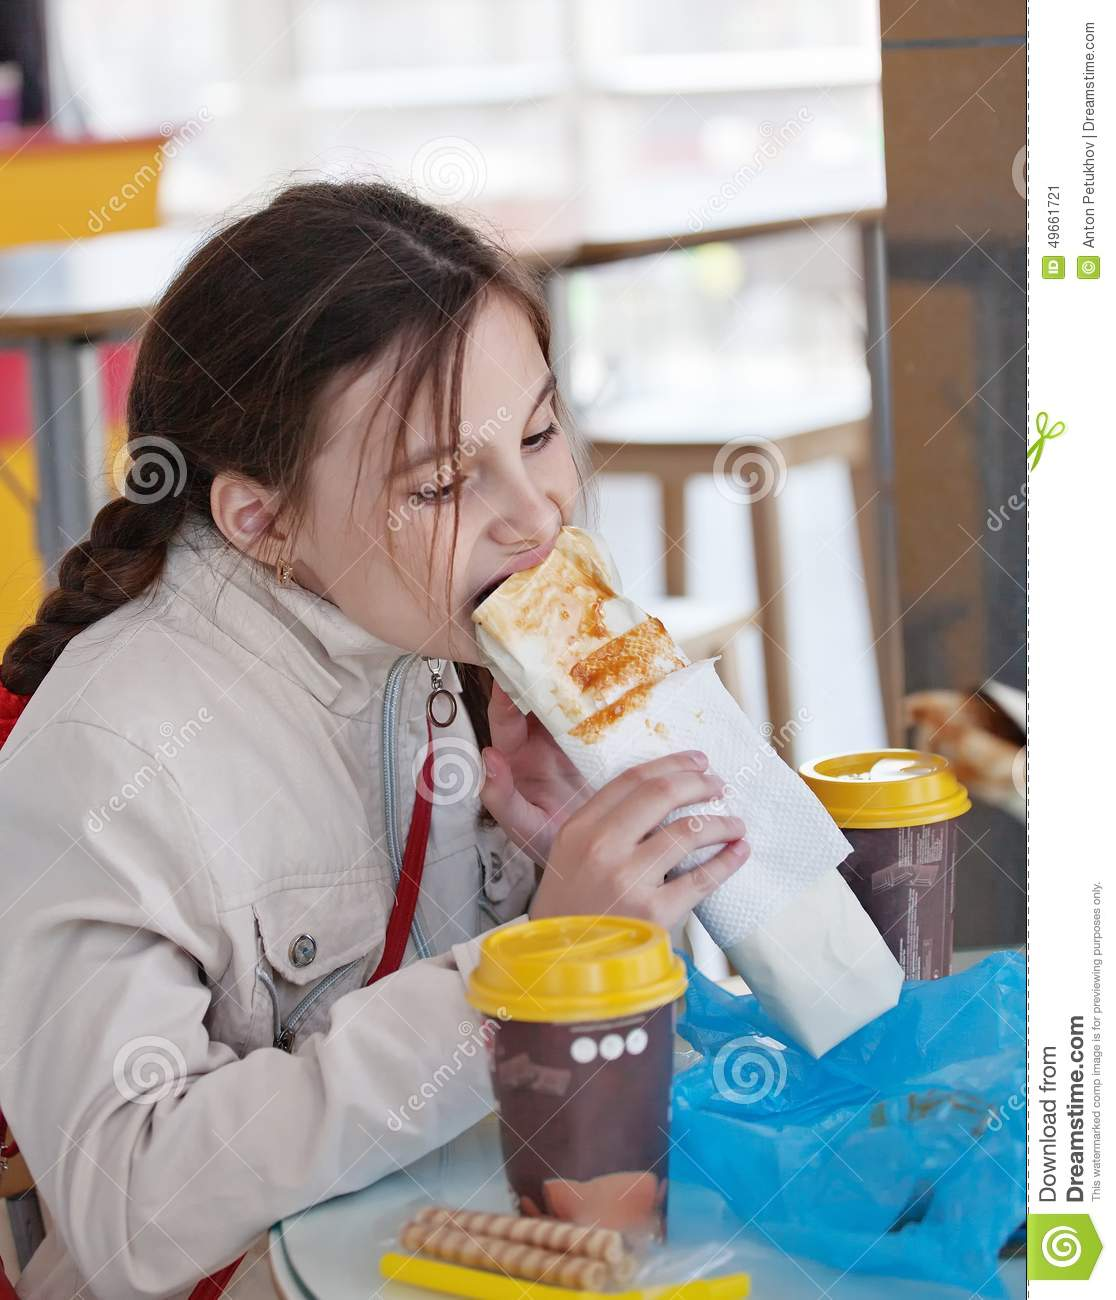 hot girls eating discharge